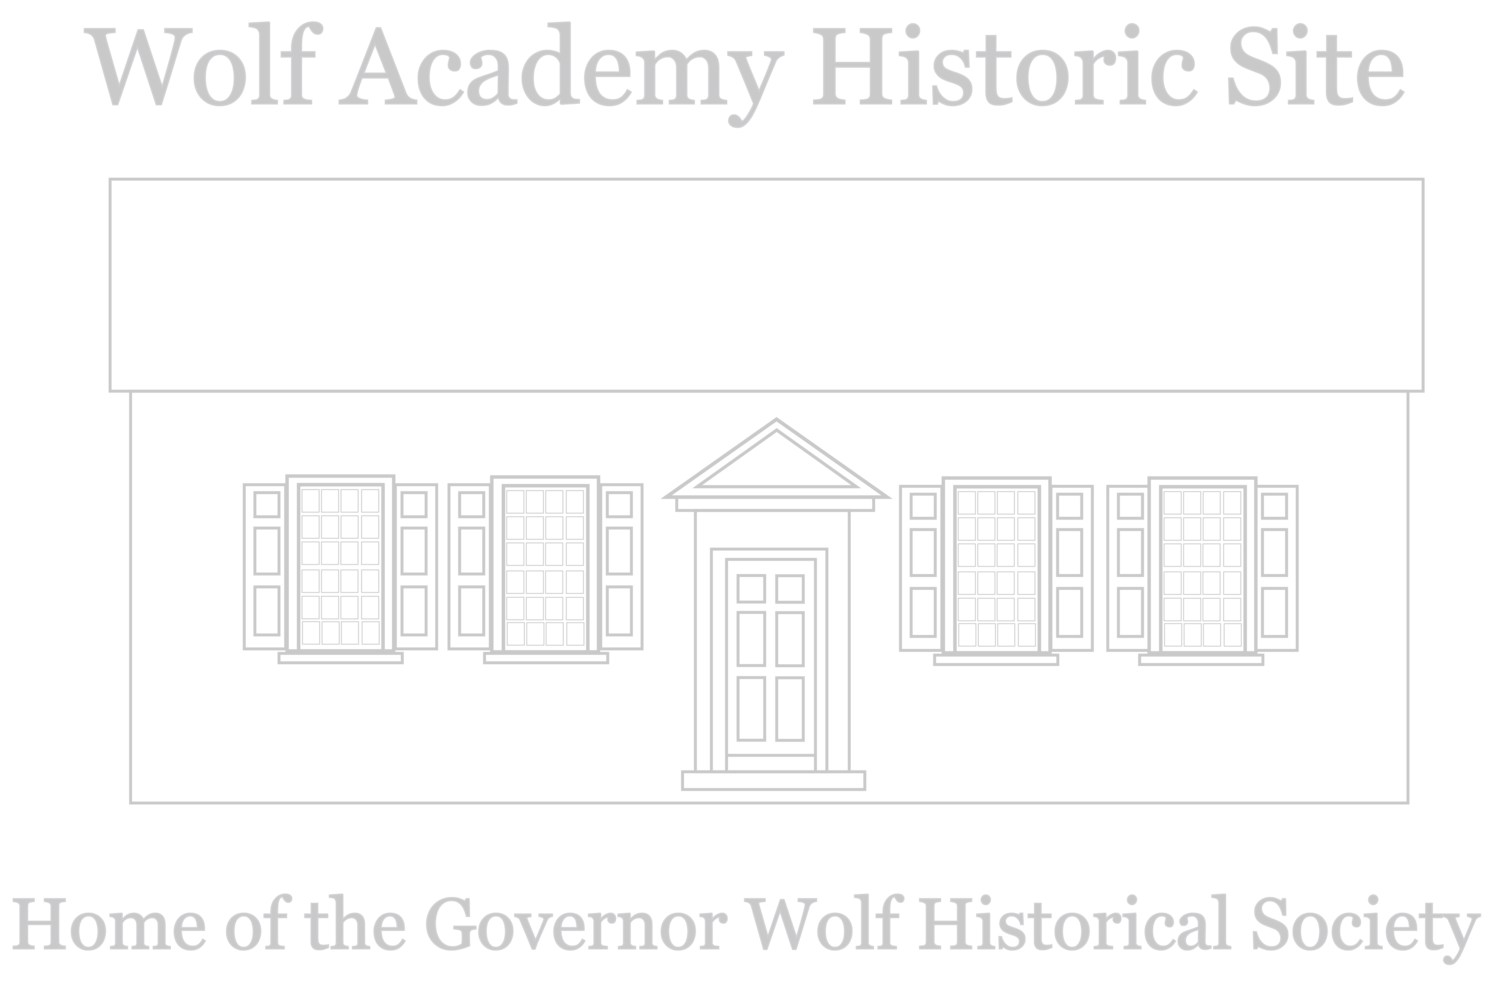 Wolf Academy Historic Site